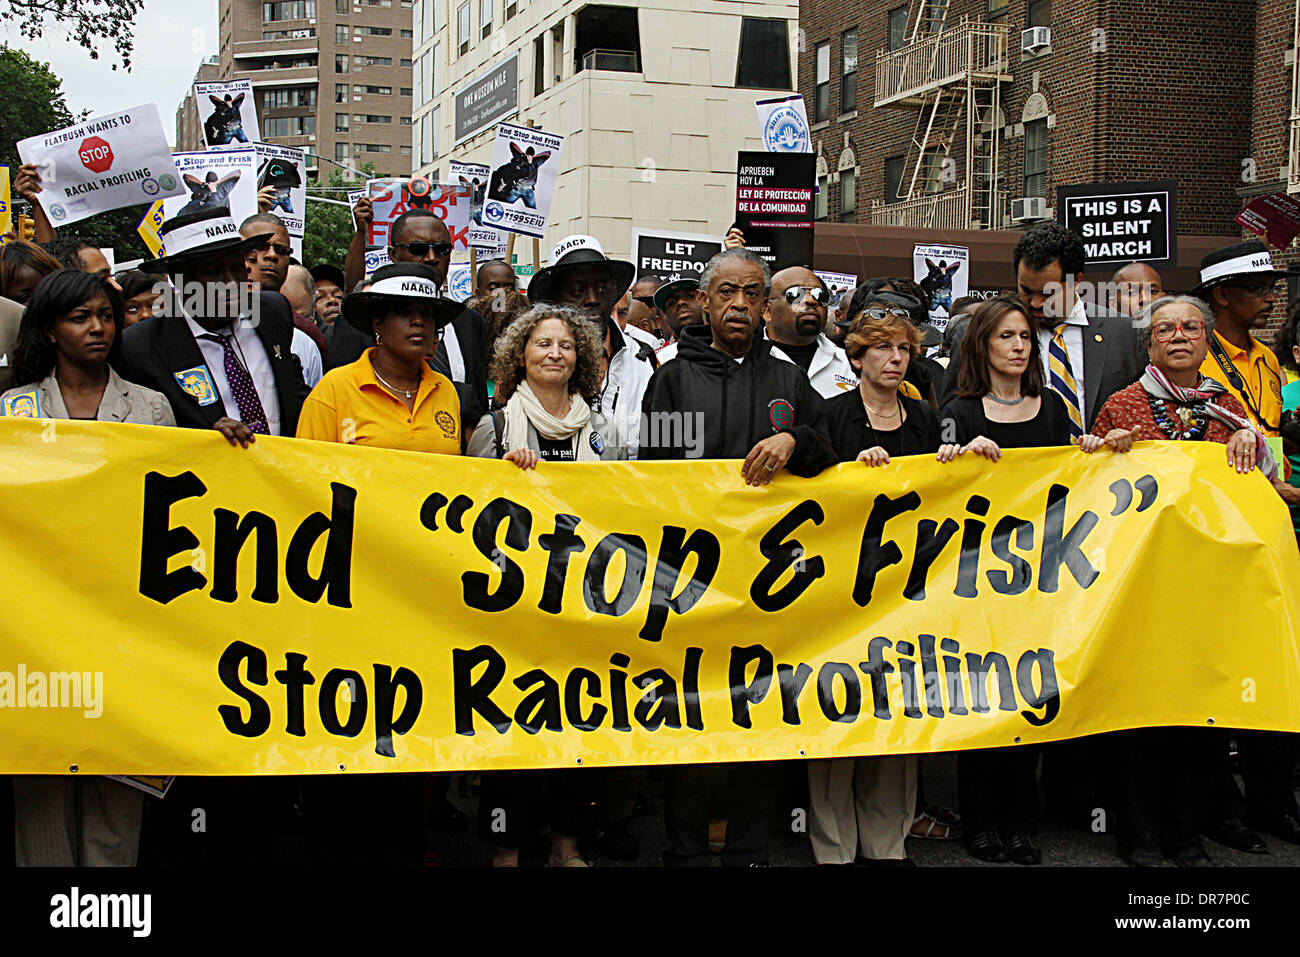 Rev Al Sharpton and campaigners during the Silent March Against Stop and Frsik New York City, USA - 17.06.12 - Stock Image